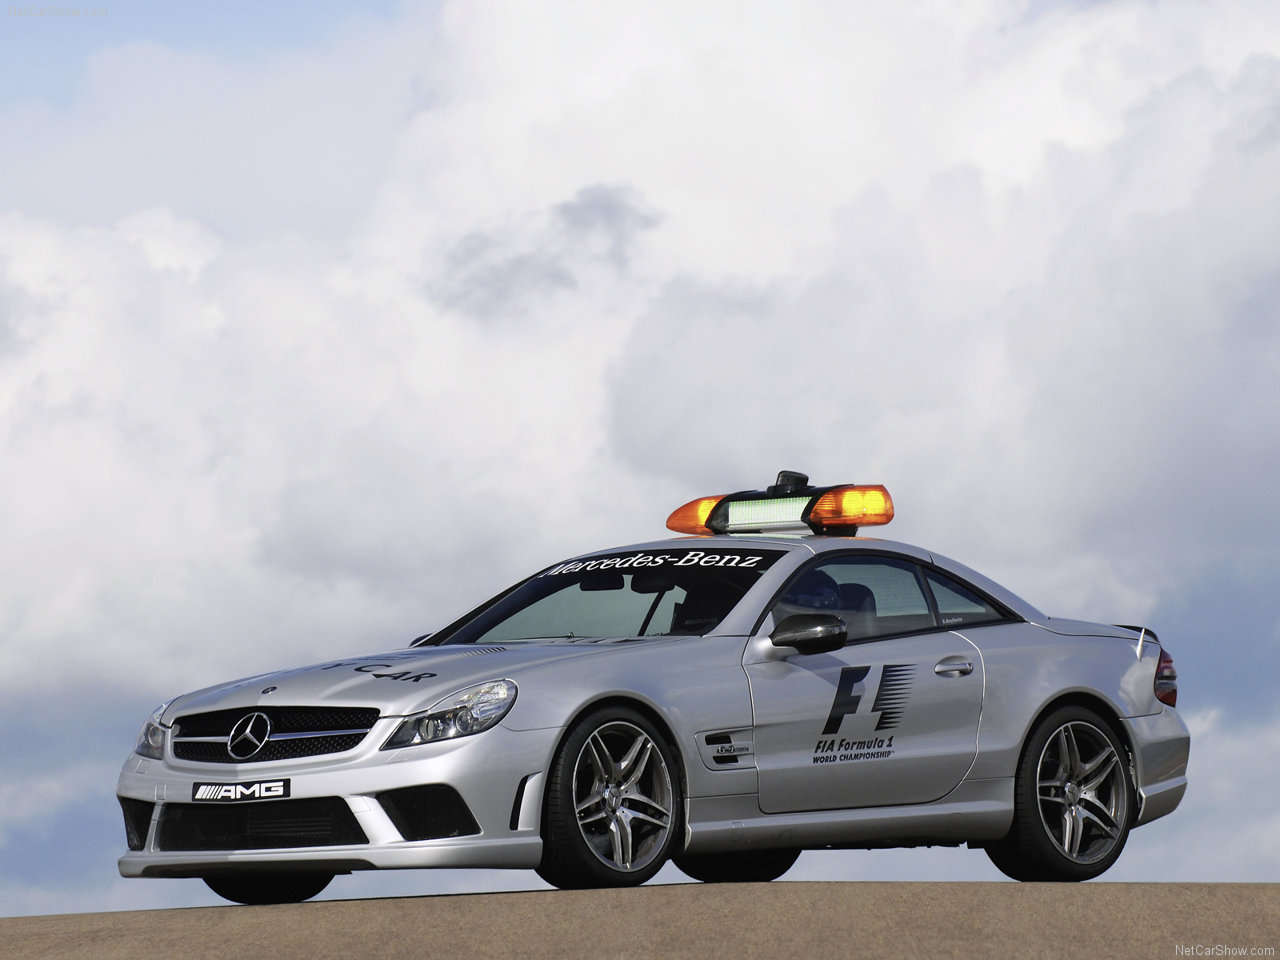 http://3.bp.blogspot.com/-4ICfohfgMA8/TWoJmm5oi6I/AAAAAAACLPw/k3tTAol9lZA/s1600/Mercedes-Benz-SL63_AMG_F1_Safety_Car_2009_1280x960_wallpaper_04.jpg